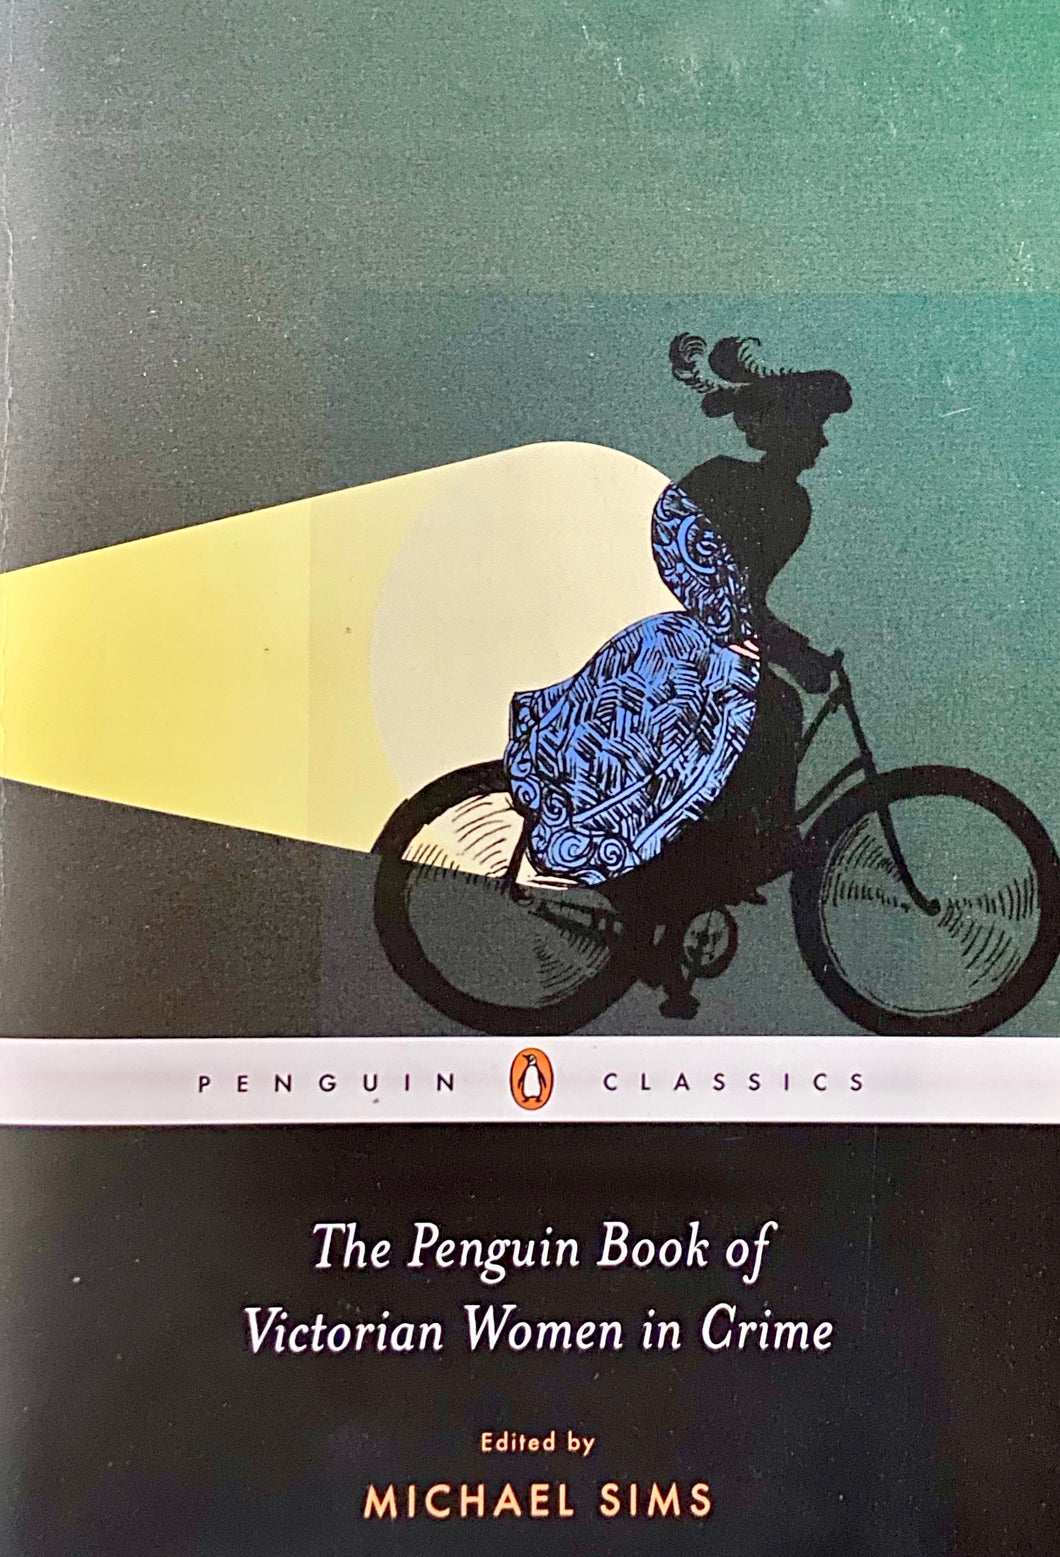 The Penguin Book of Victorian Women in Crime